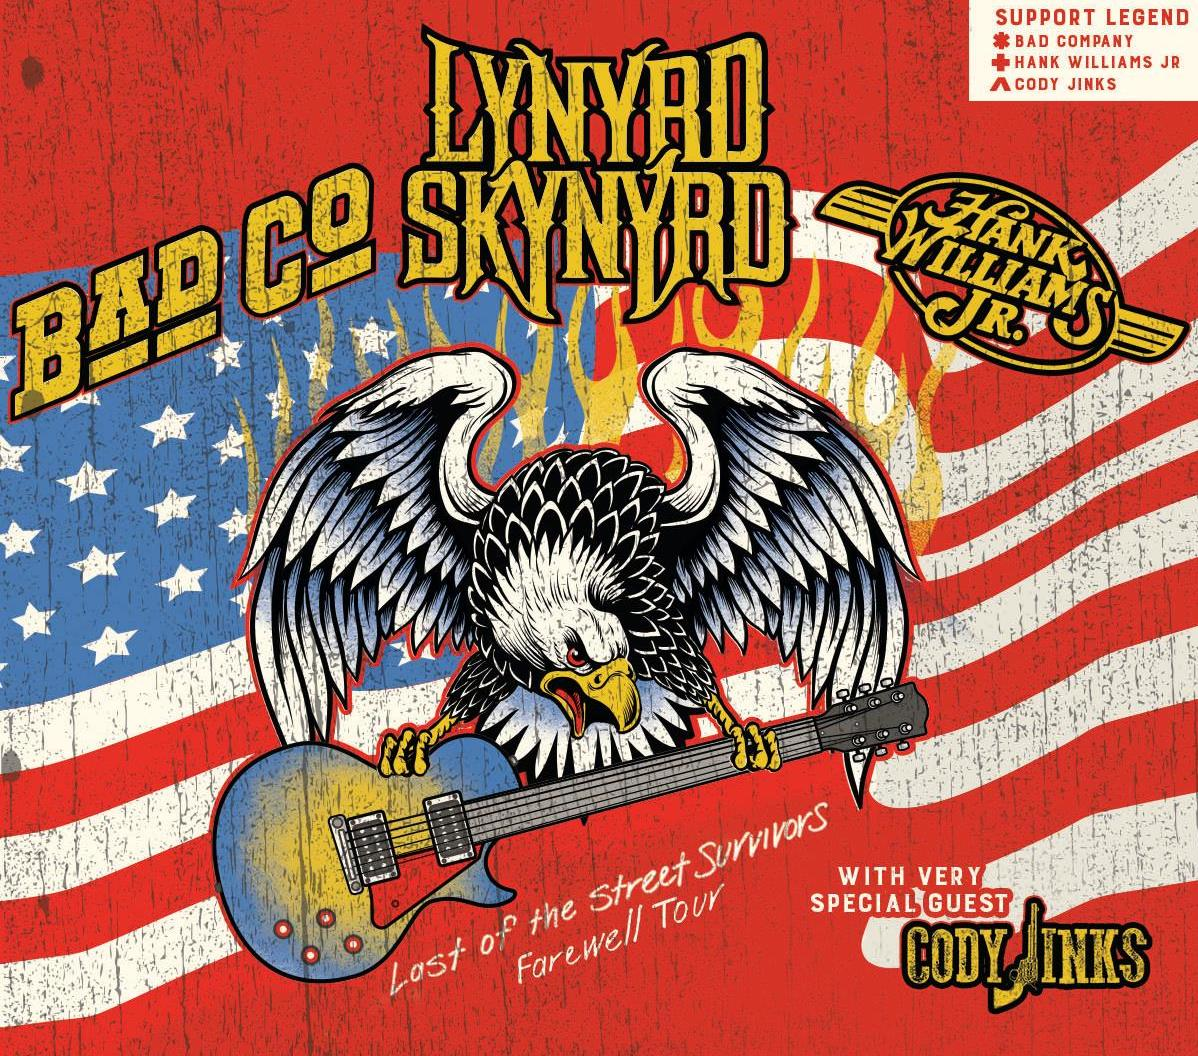 Hank Williams Jr Tour 2020 Lynyrd Skynyrd Set 2019 Dates For Farewell Tour | Best Classic Bands